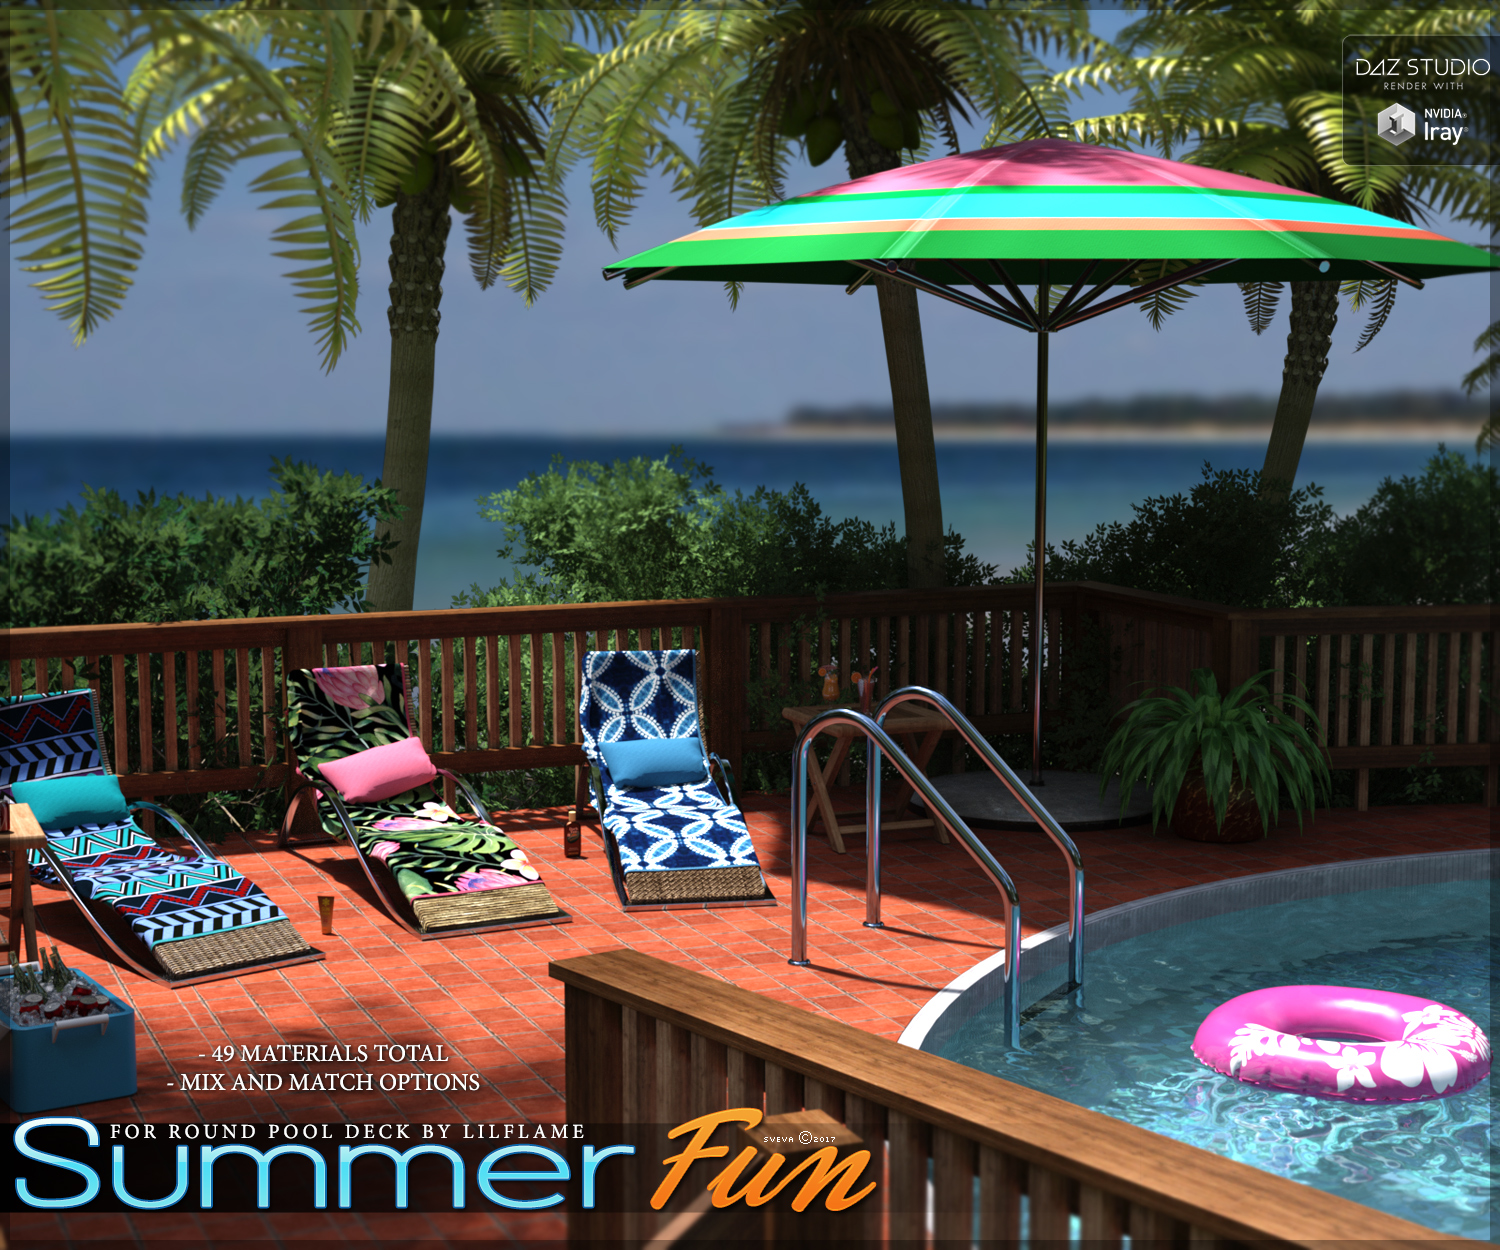 Summer Fun for Round Pool Deck